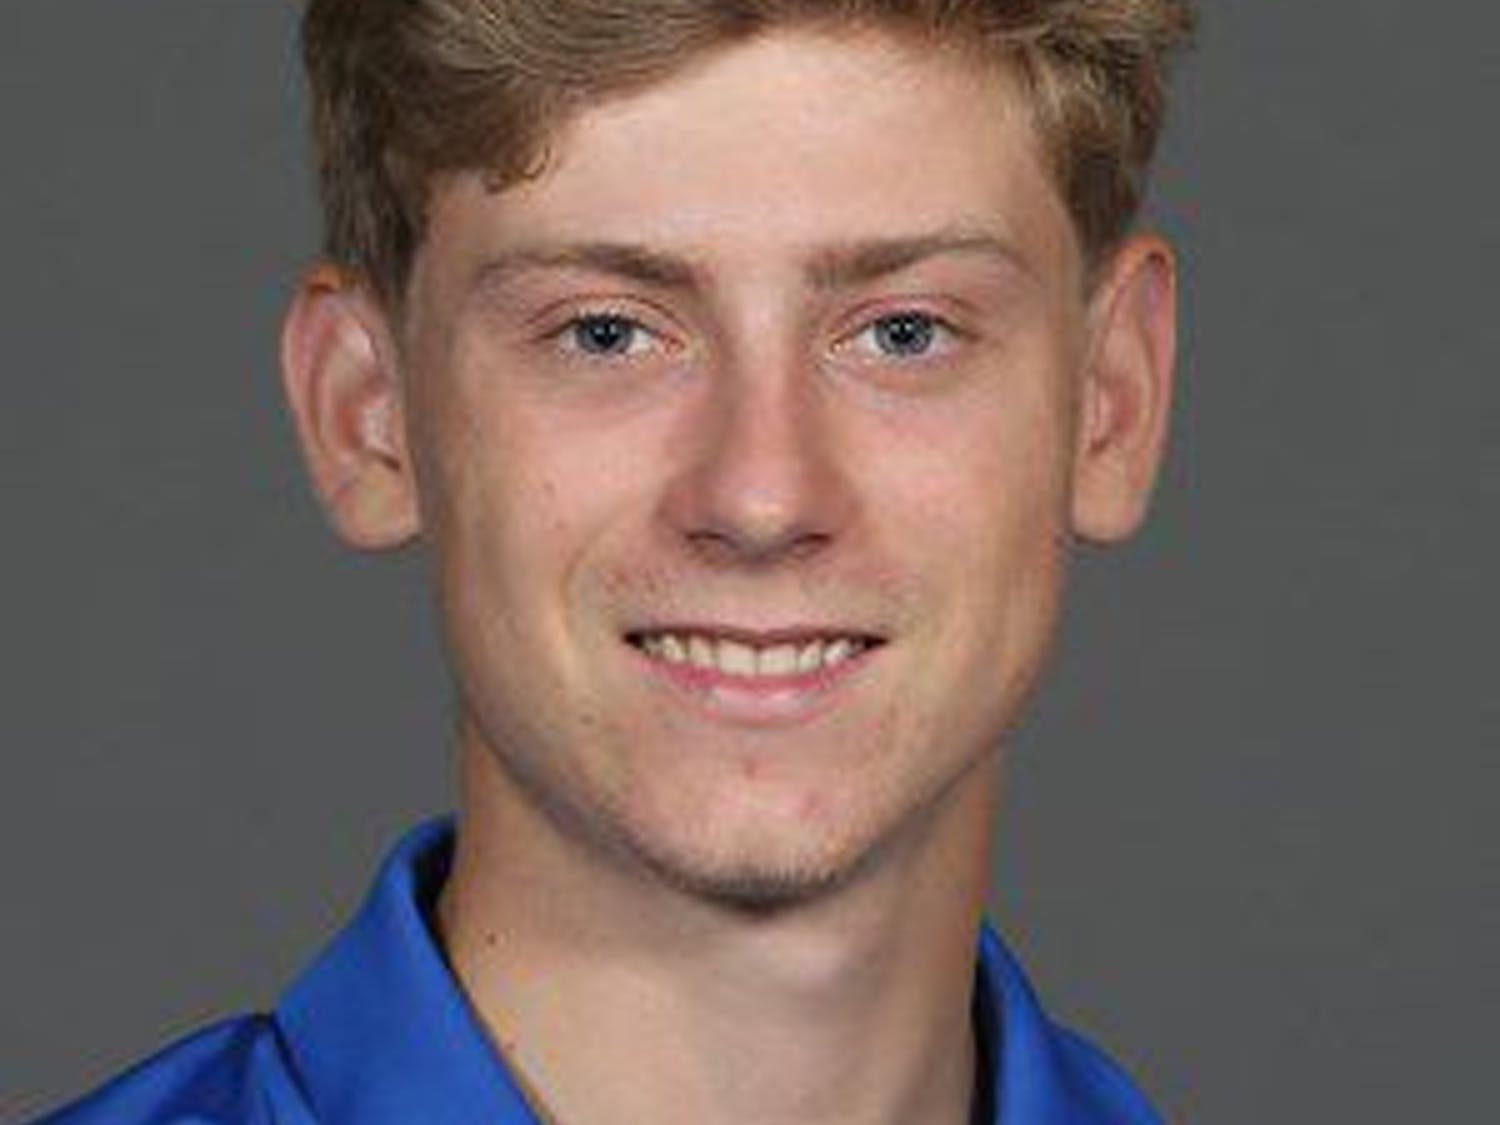 Freshman golfer John Axelsen led the way for the Gators on Day 2 of the NCAA Championships. He posted a team-low score of 4 under on Saturday.